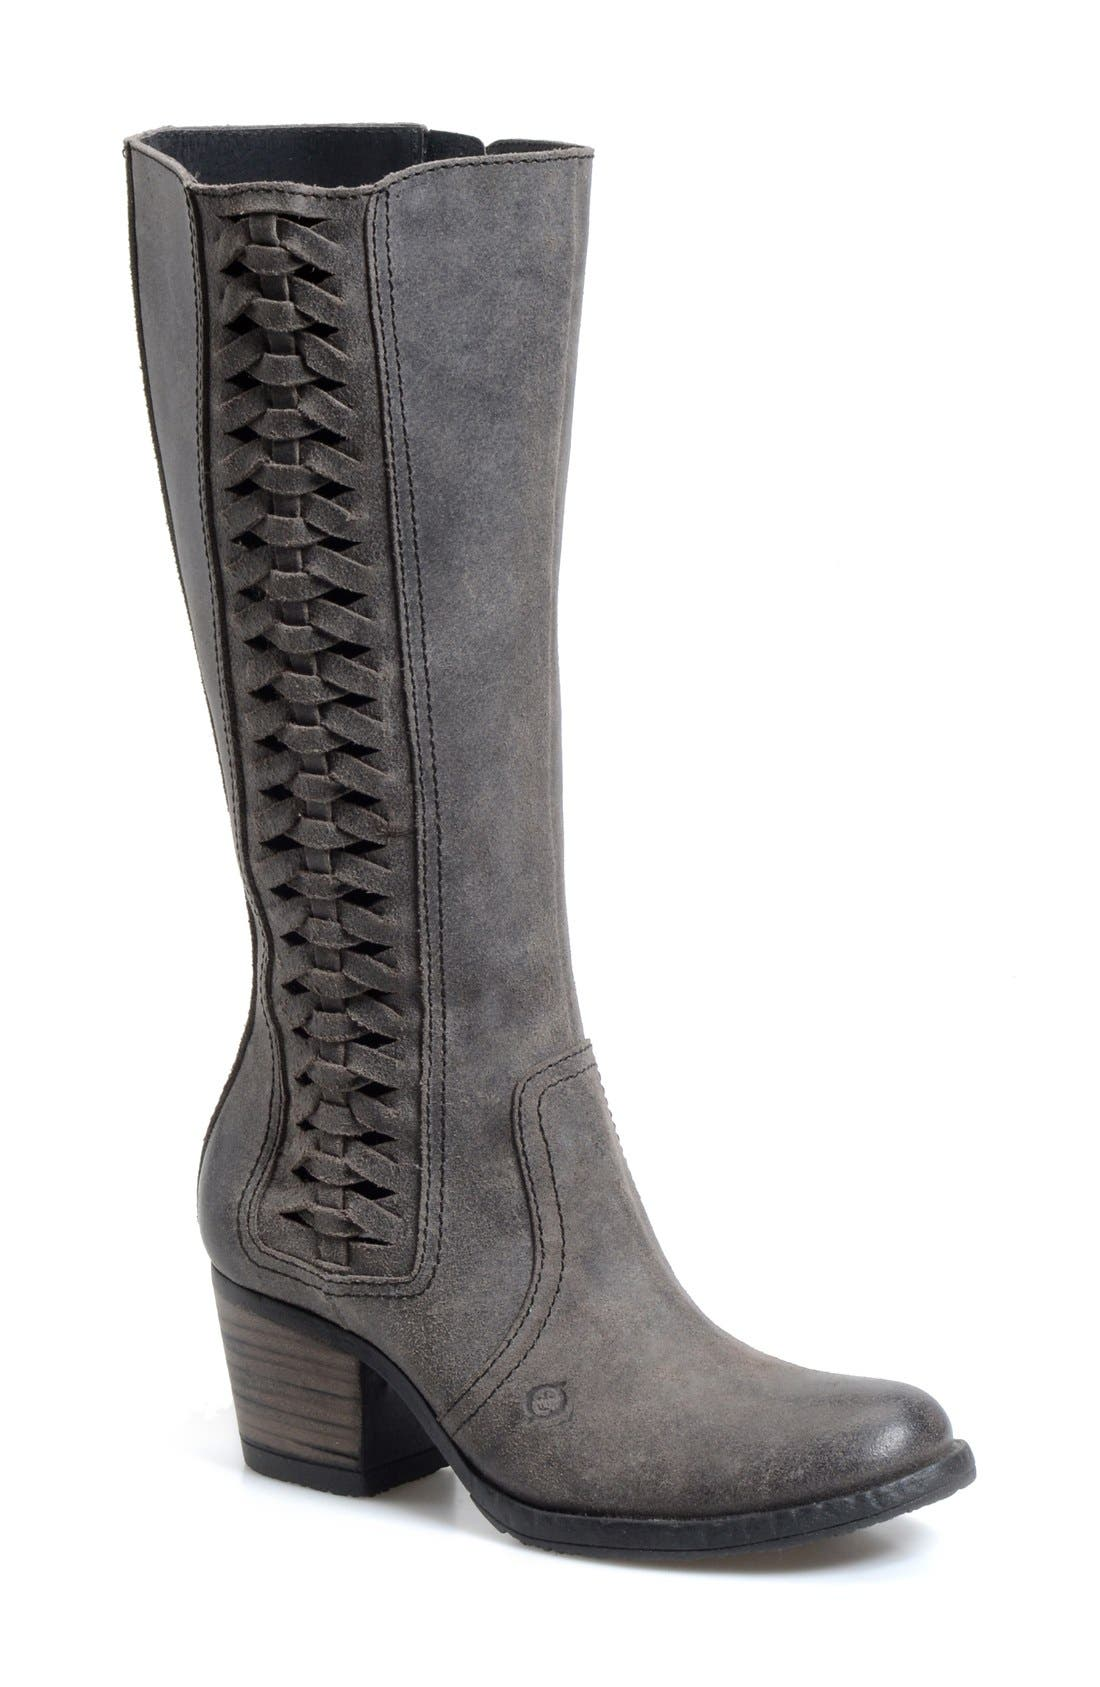 Alternate Image 1 Selected - Børn 'Ochoa' Western Boot (Women)